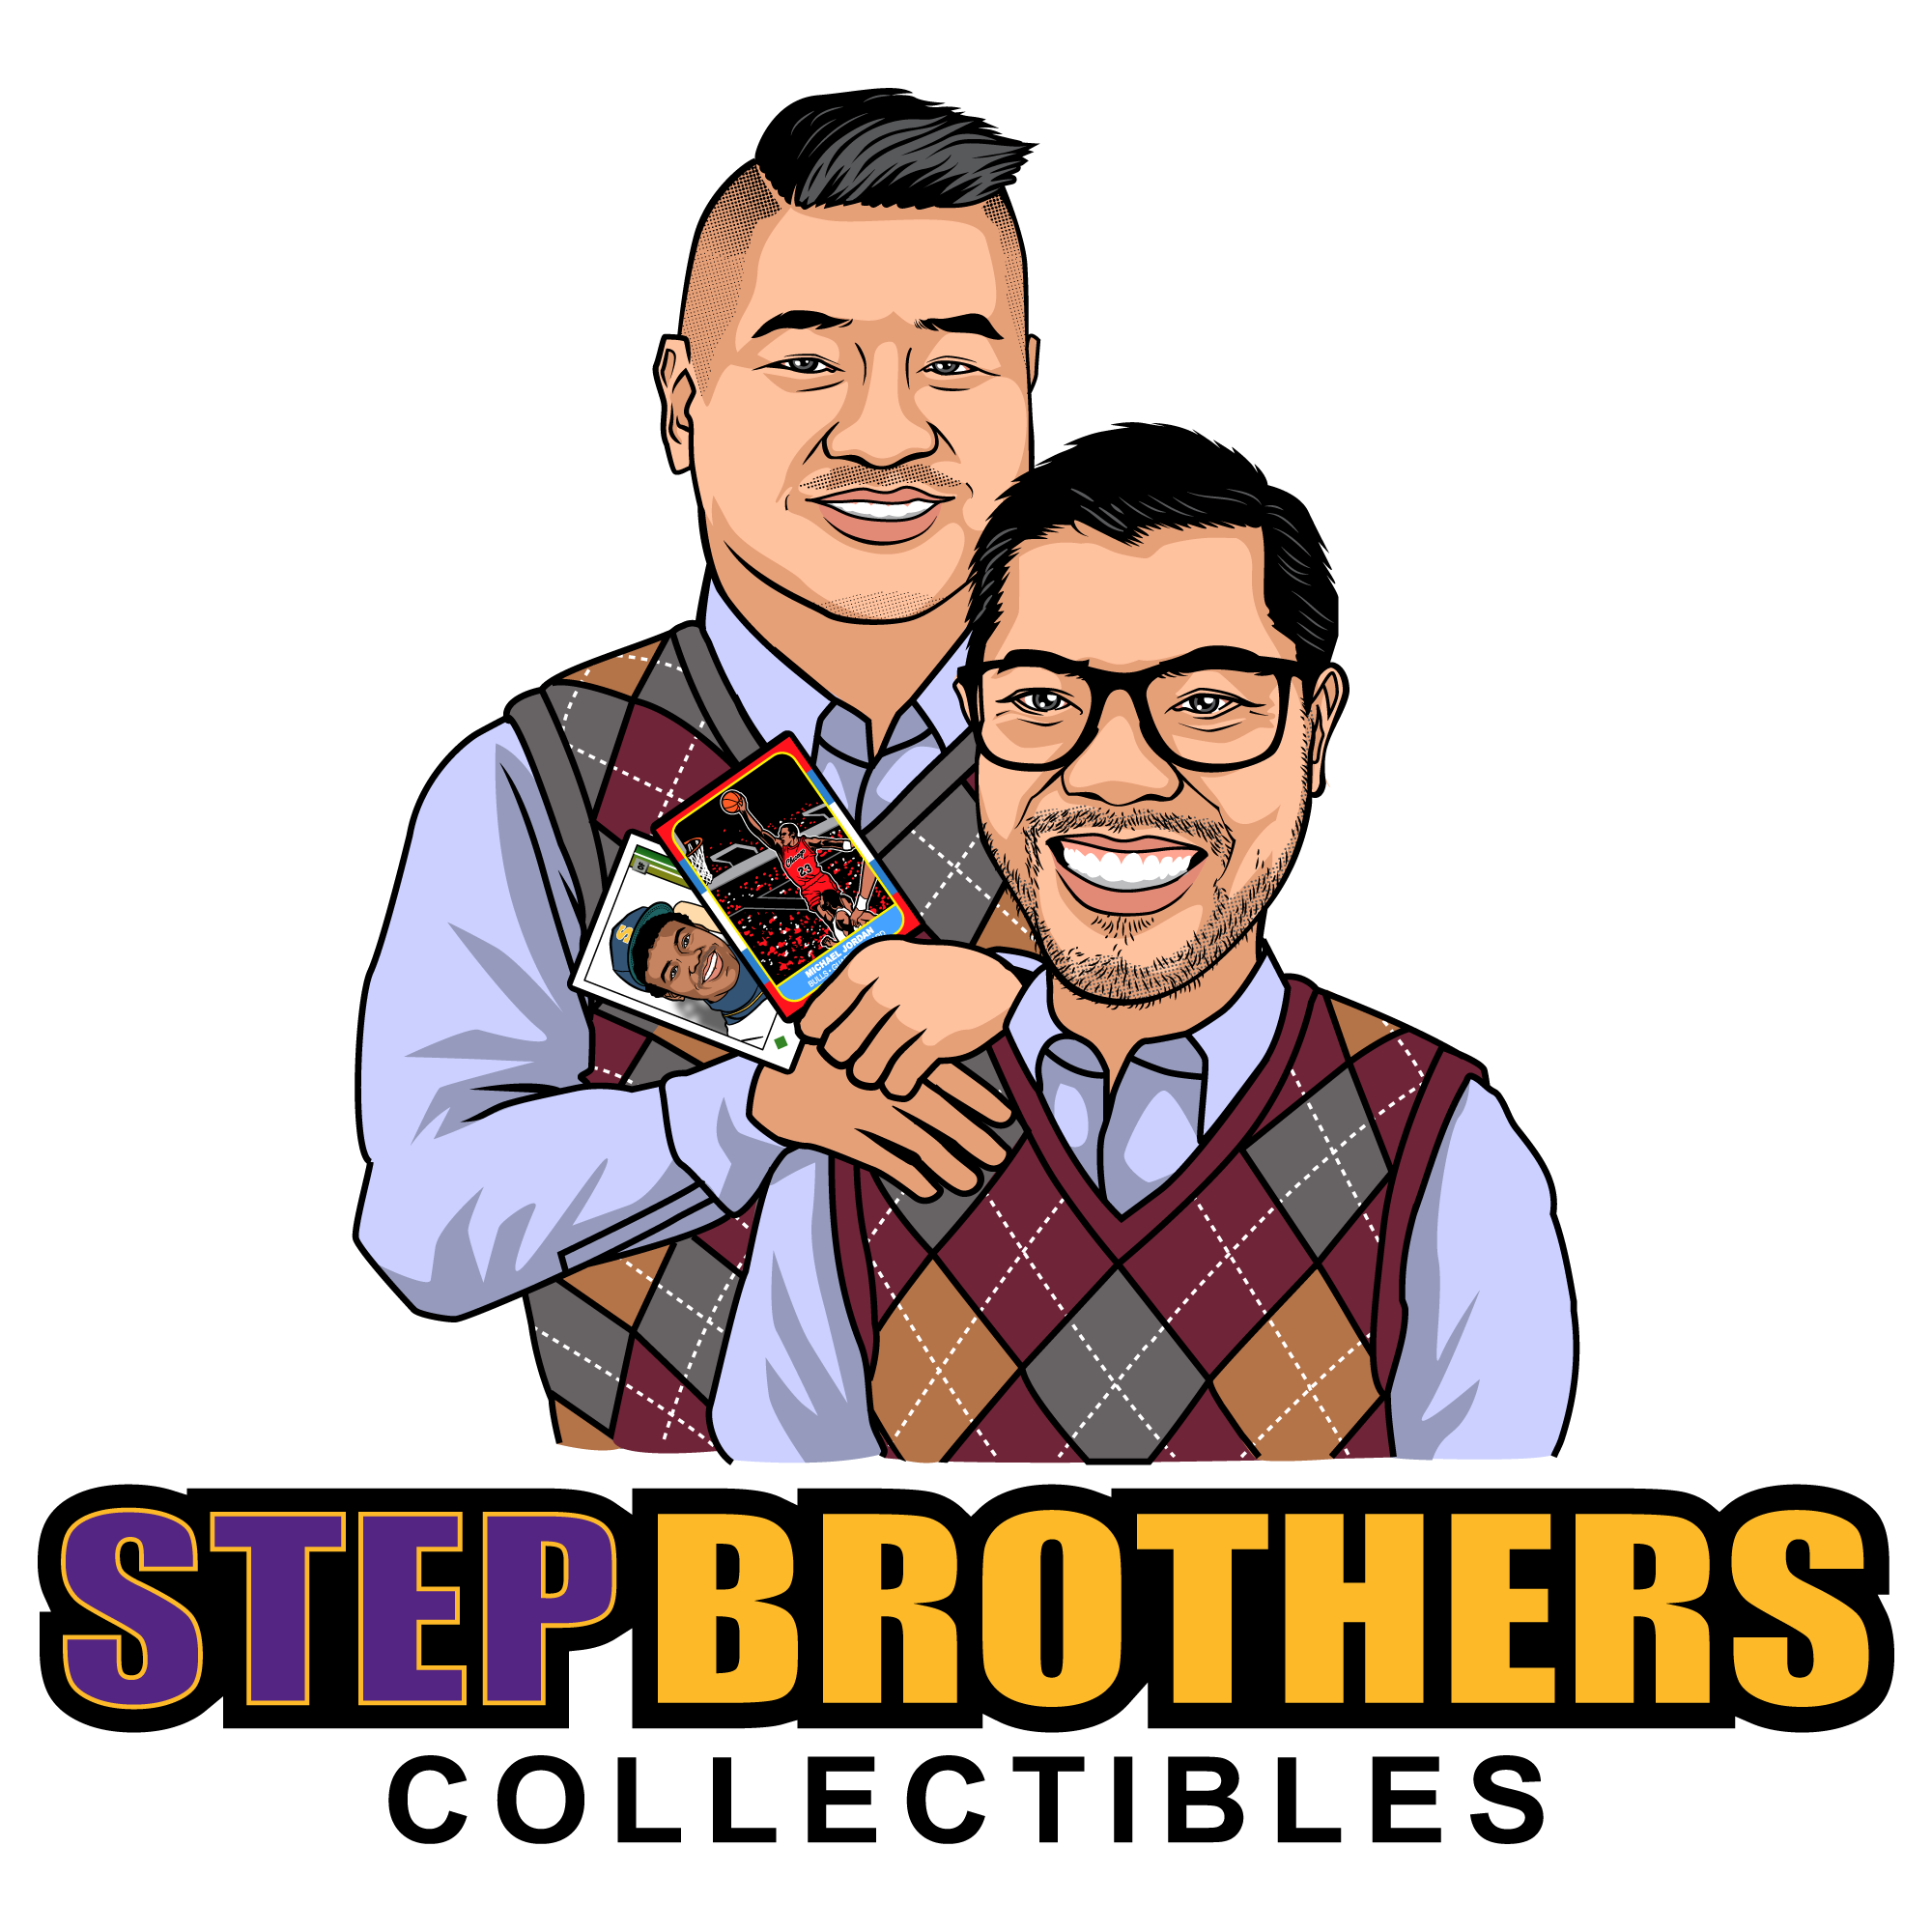 Win the chance to draw a logo caricature of the movie Step Brothers!